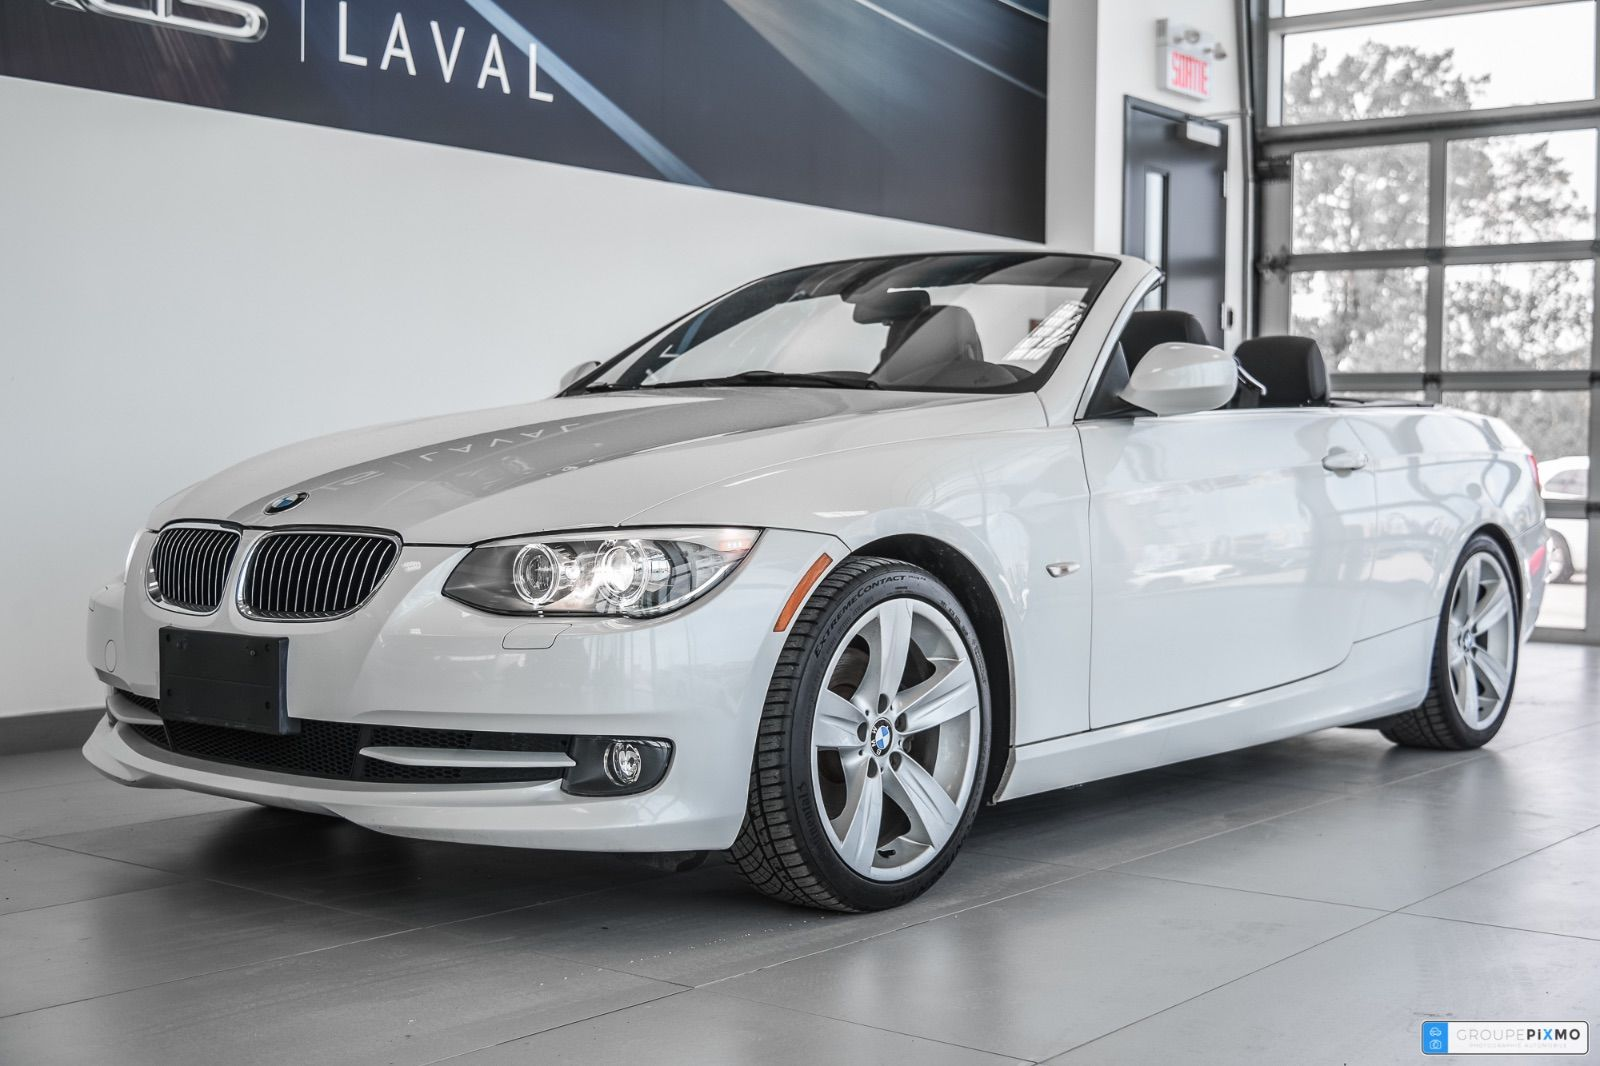 Pre Owned 2011 Bmw 328i Convertible 328i Gps Cuir 165 Sem Txs Incluses In Laval Pre Owned Inventory Lexus Laval In Laval